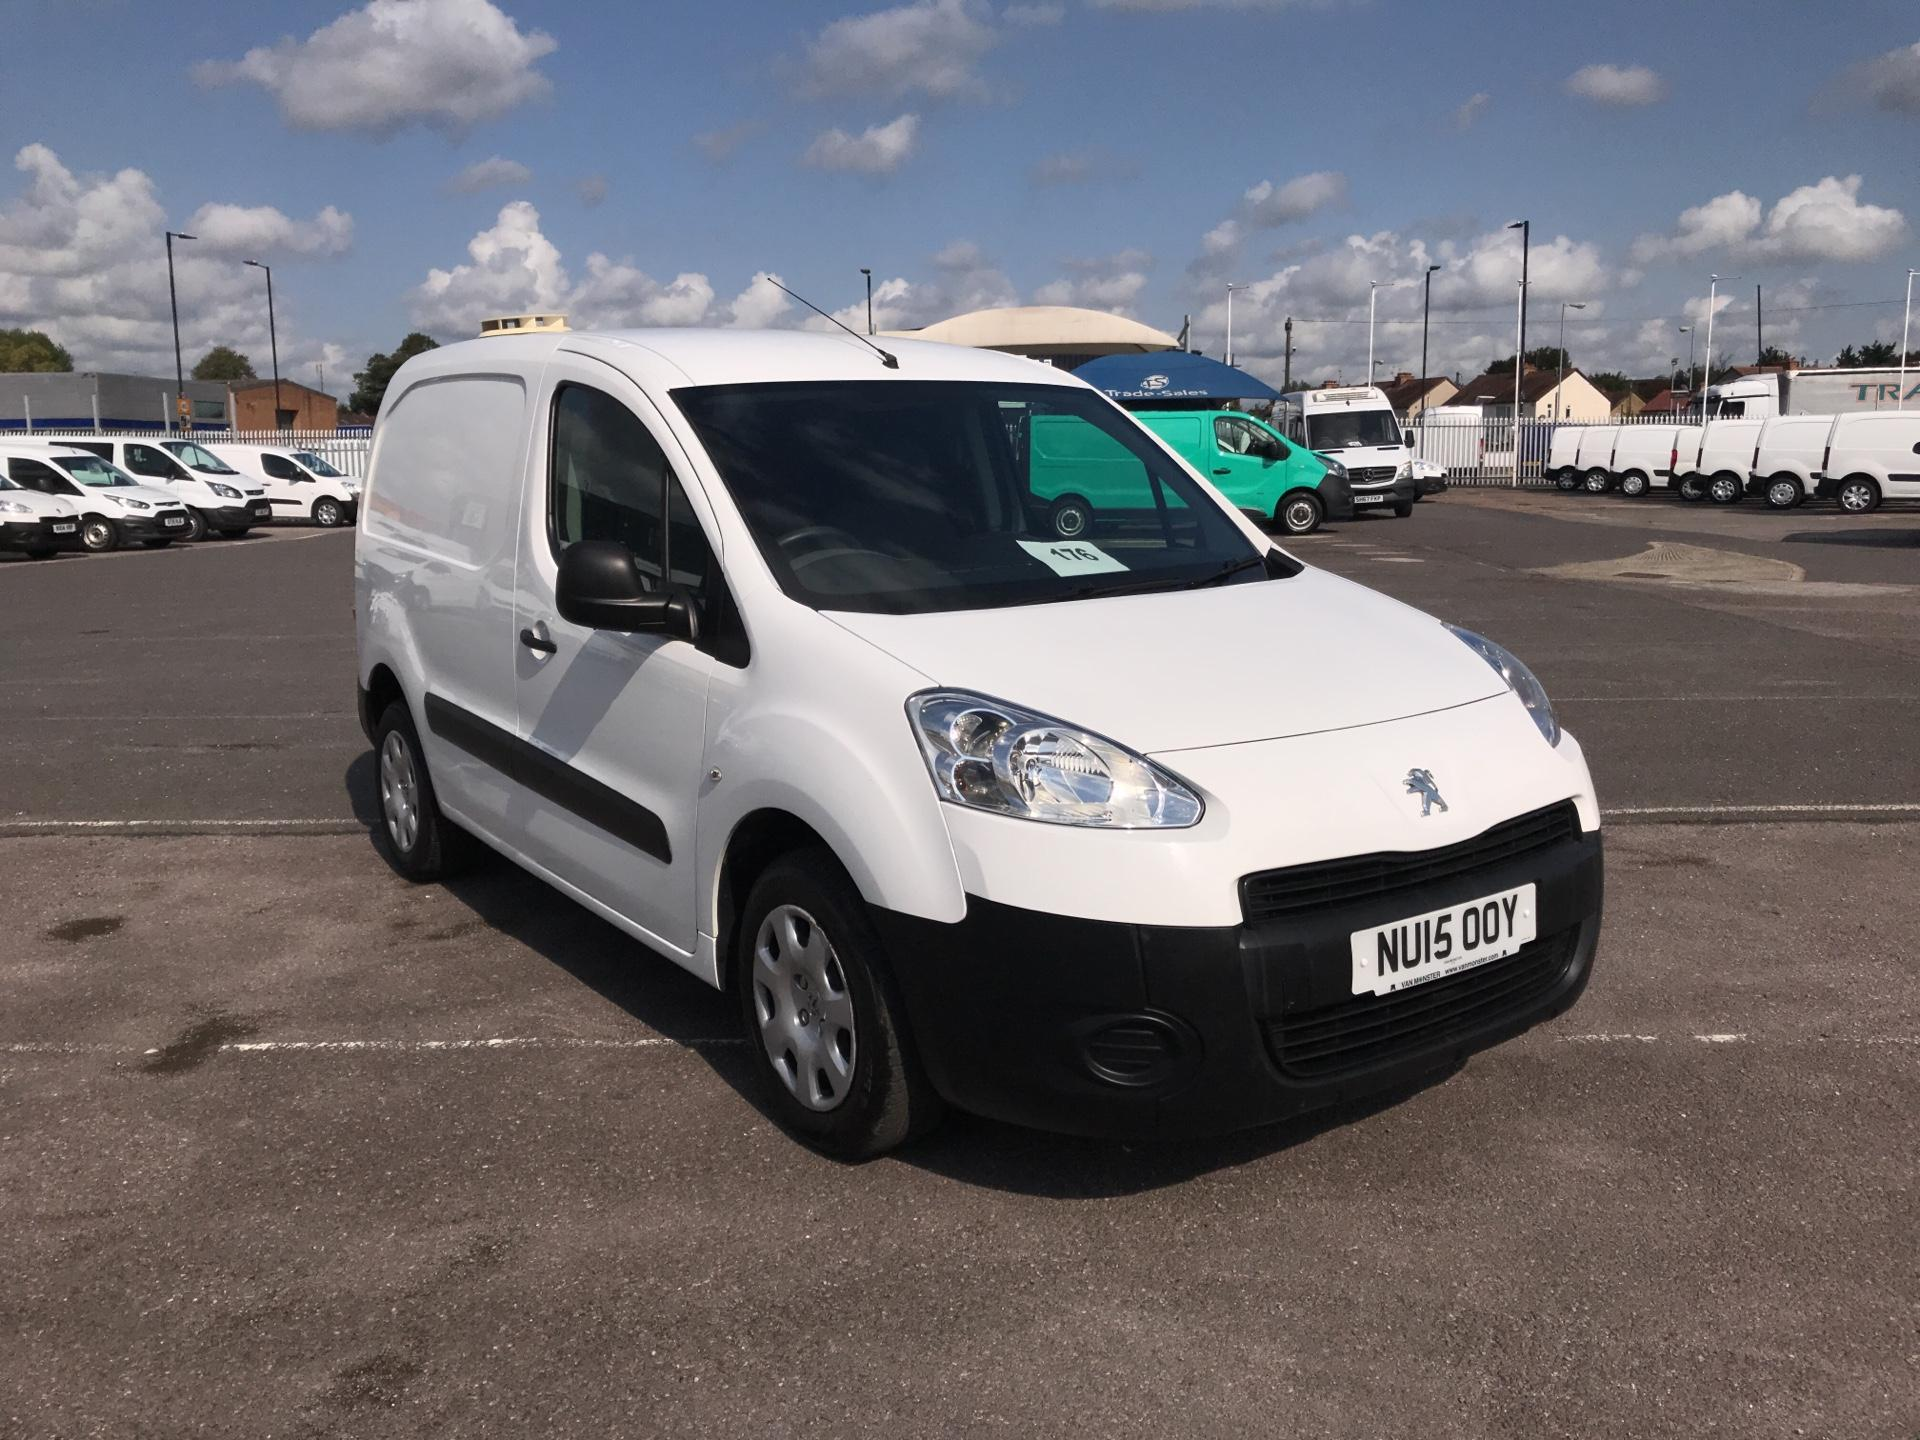 2015 Peugeot Partner L1 850 S 1.6 92PS (SLD) EURO 5*VALUE RANGE VEHICLE CONDITION REFLECTED IN PRICE* (NU15OOY)